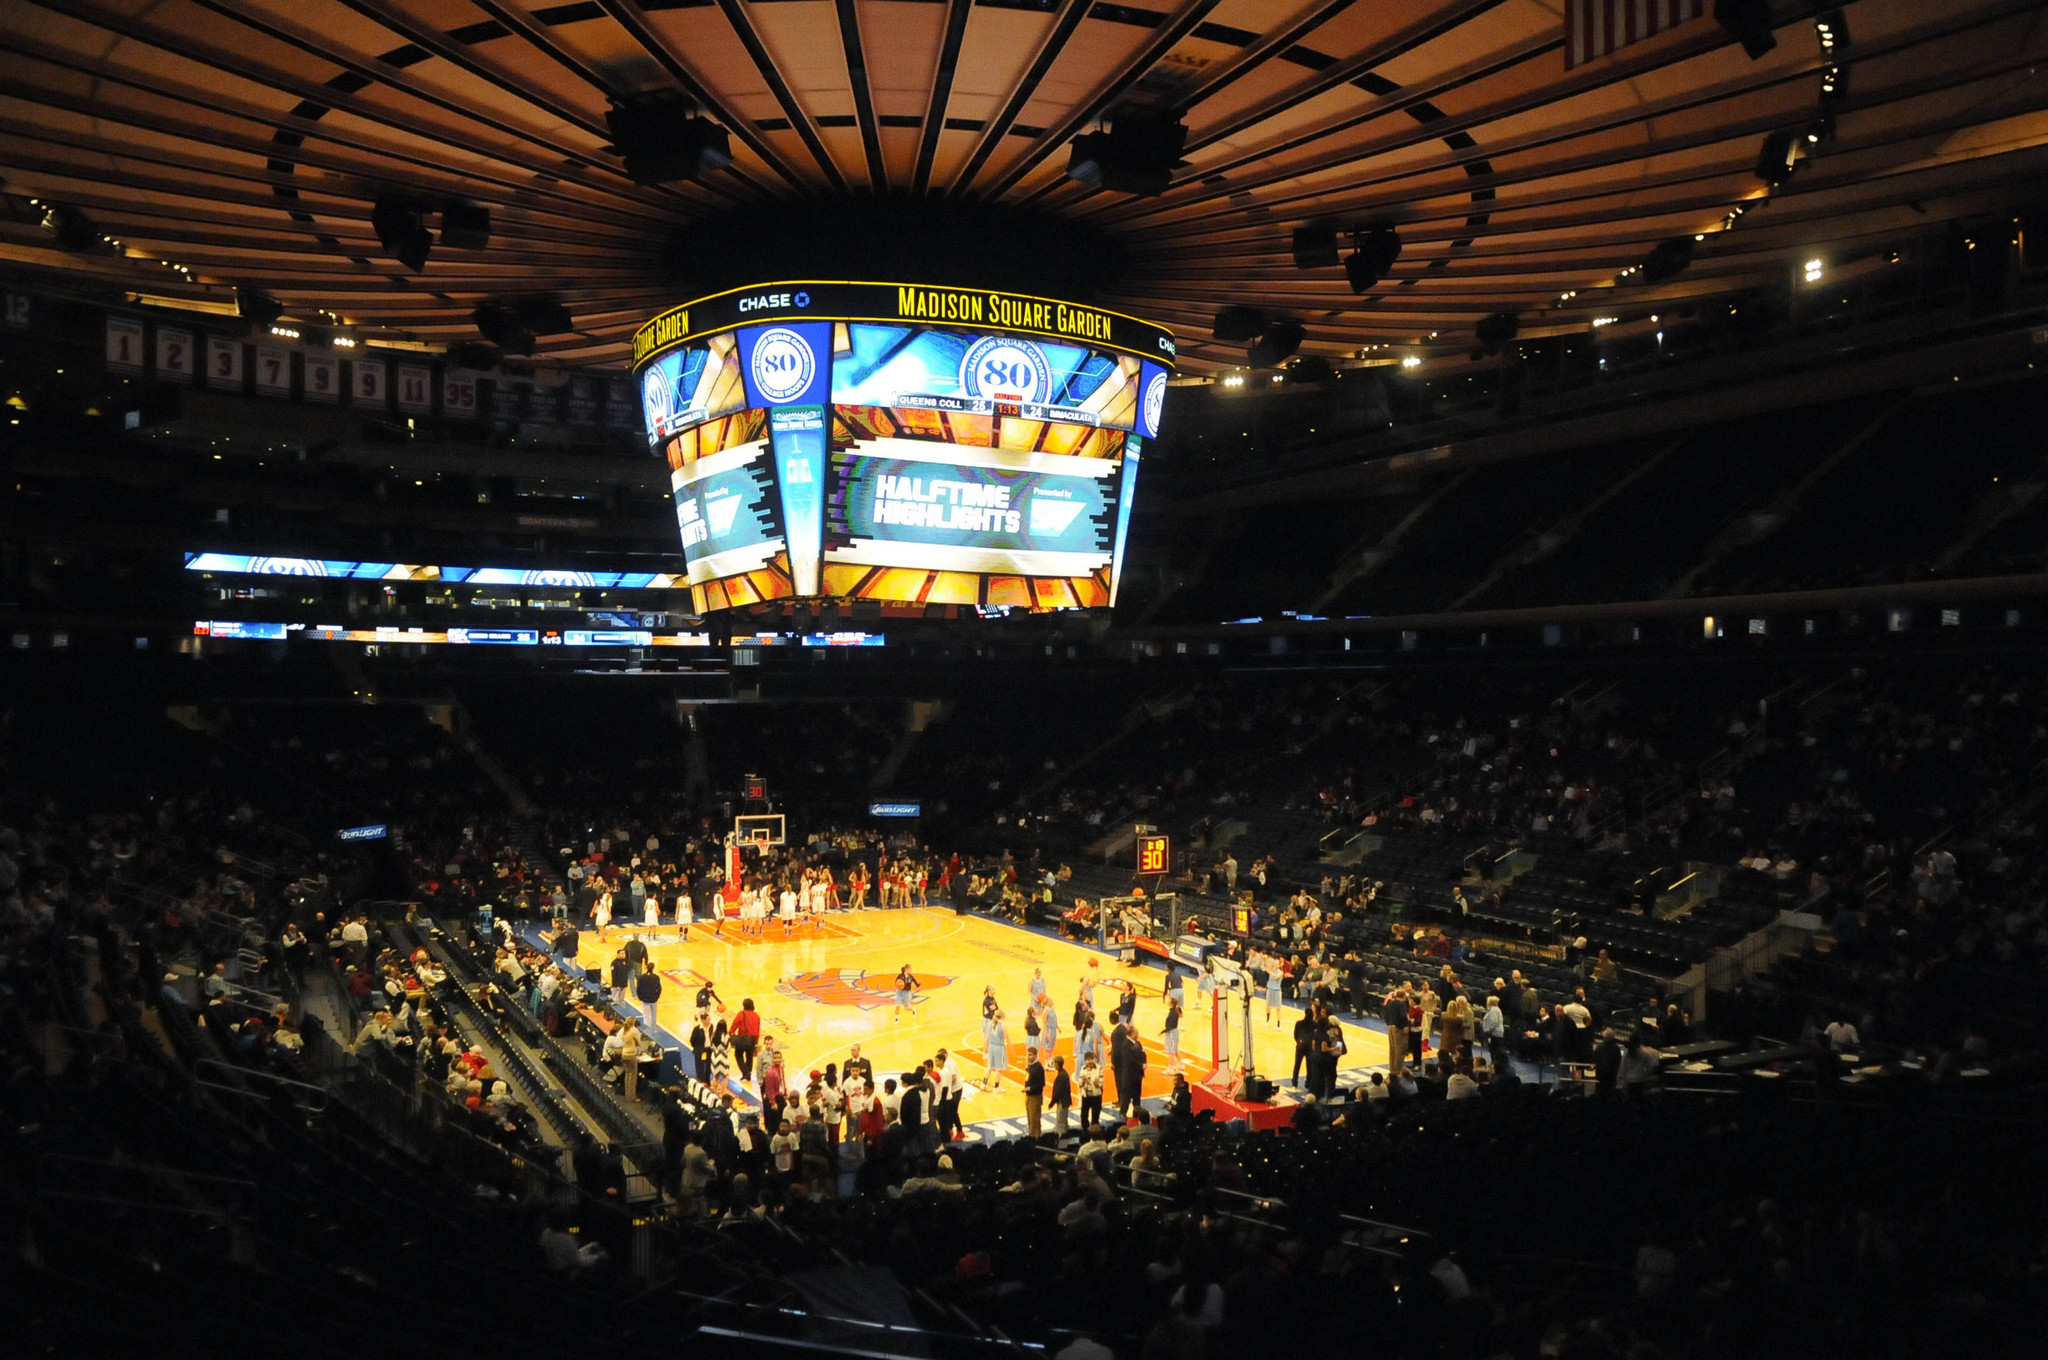 Madison square garden is one of geno auriemma 39 s favorite place to play a basketball game Madison square garden basketball